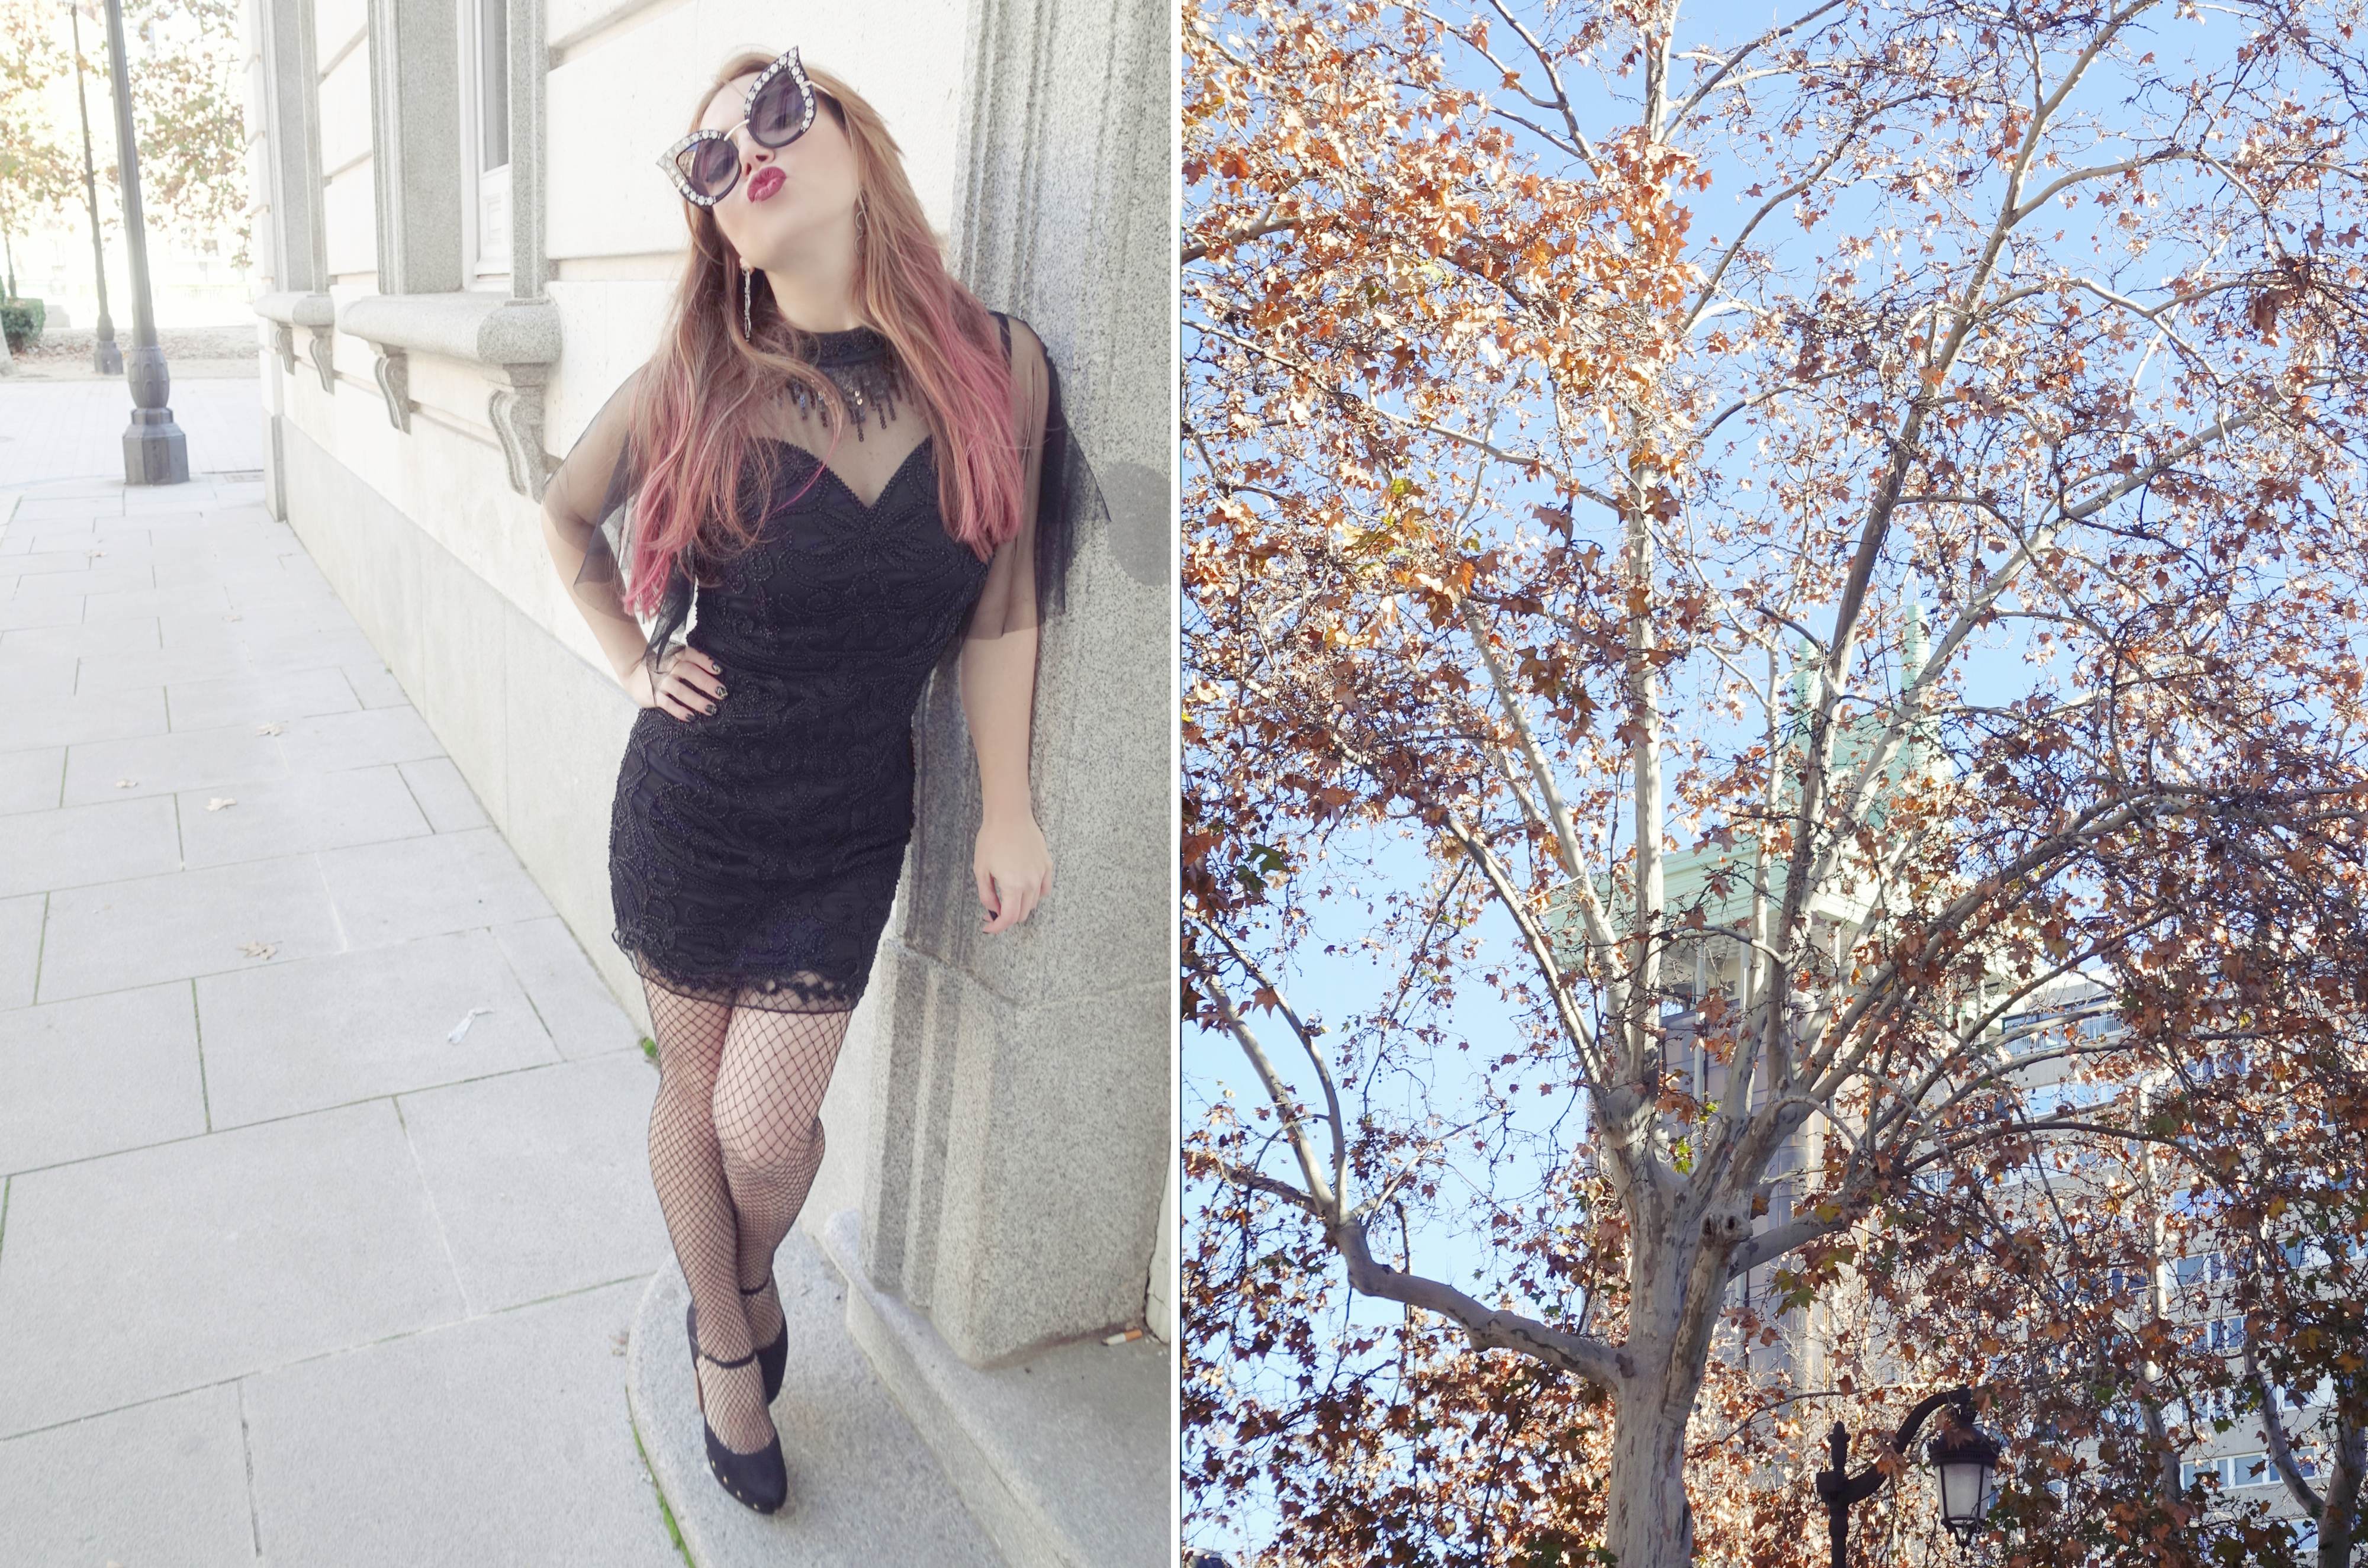 Madrid-street-style-PiensaenChic-fashionista-blog-de-moda-ChicAdicta-Molly-bracken-dress-vestidos-negros-hipster-glasses-Chic-Adicta-Piensa-en-Chic